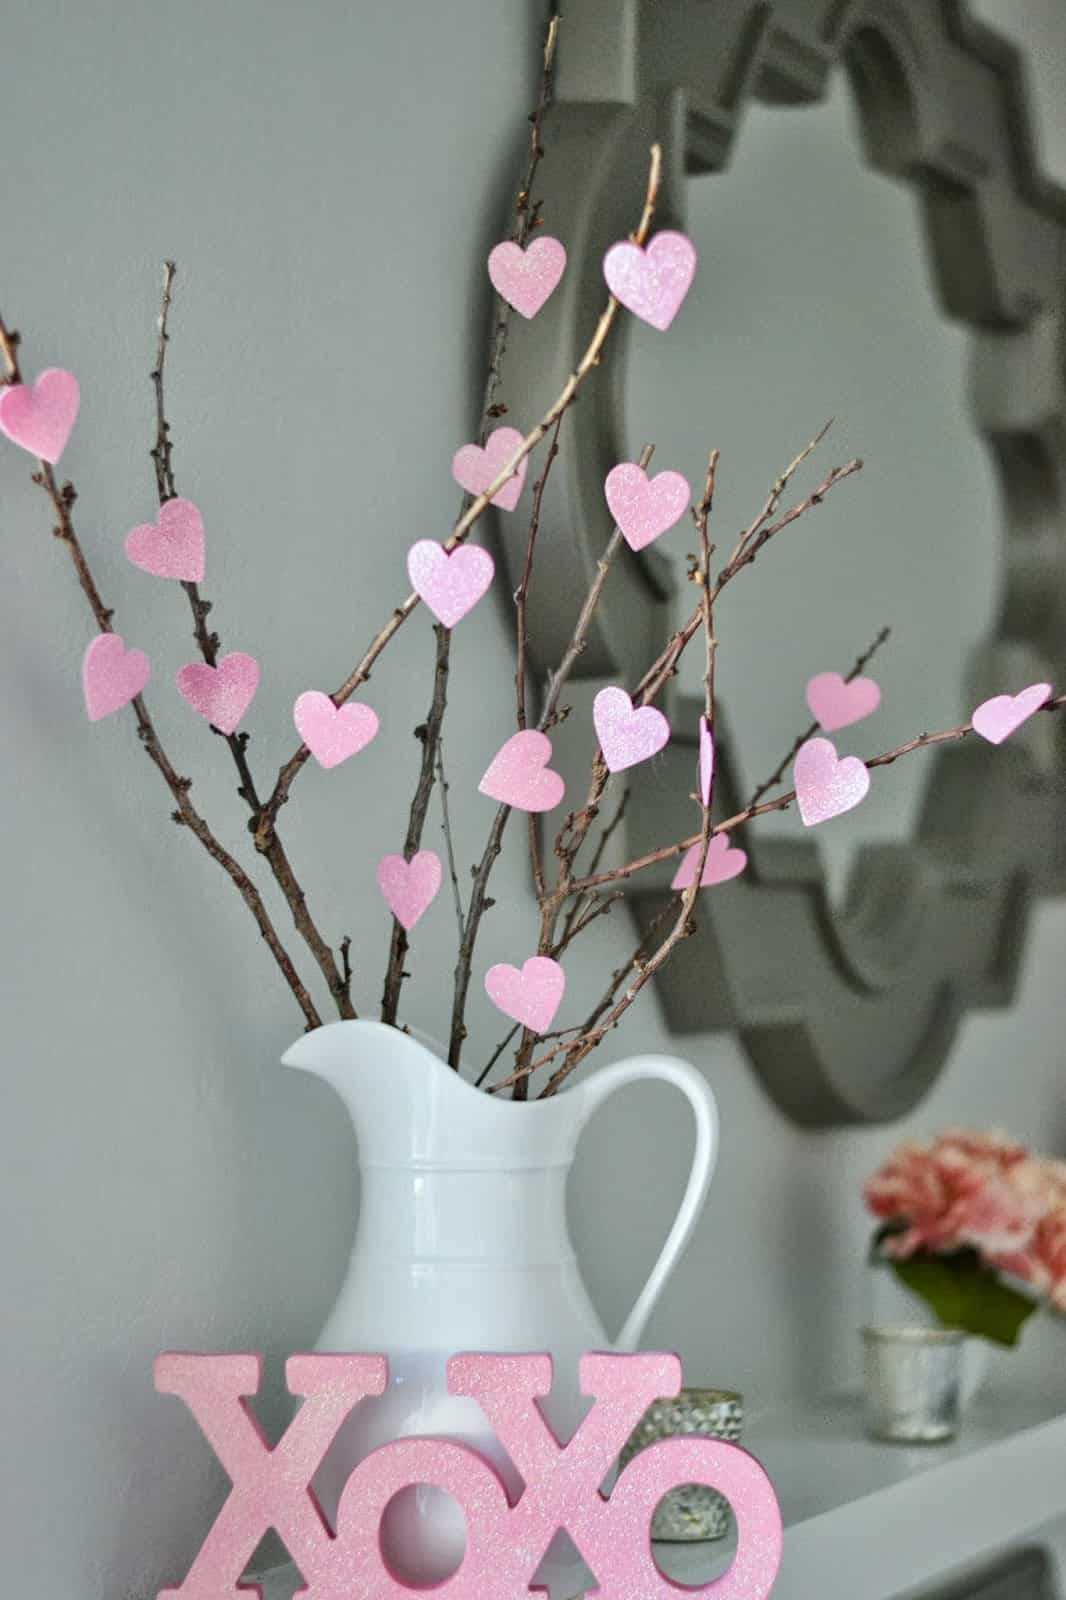 14 Stunning Valentine's Day Decoration Ideas you Will Seriously Fall In Love With This Year! #valentinesdaydecorationideas #valentines #valentinesdaycrafts #valentinesdecor Valentines decor for the home, valentines twig tree